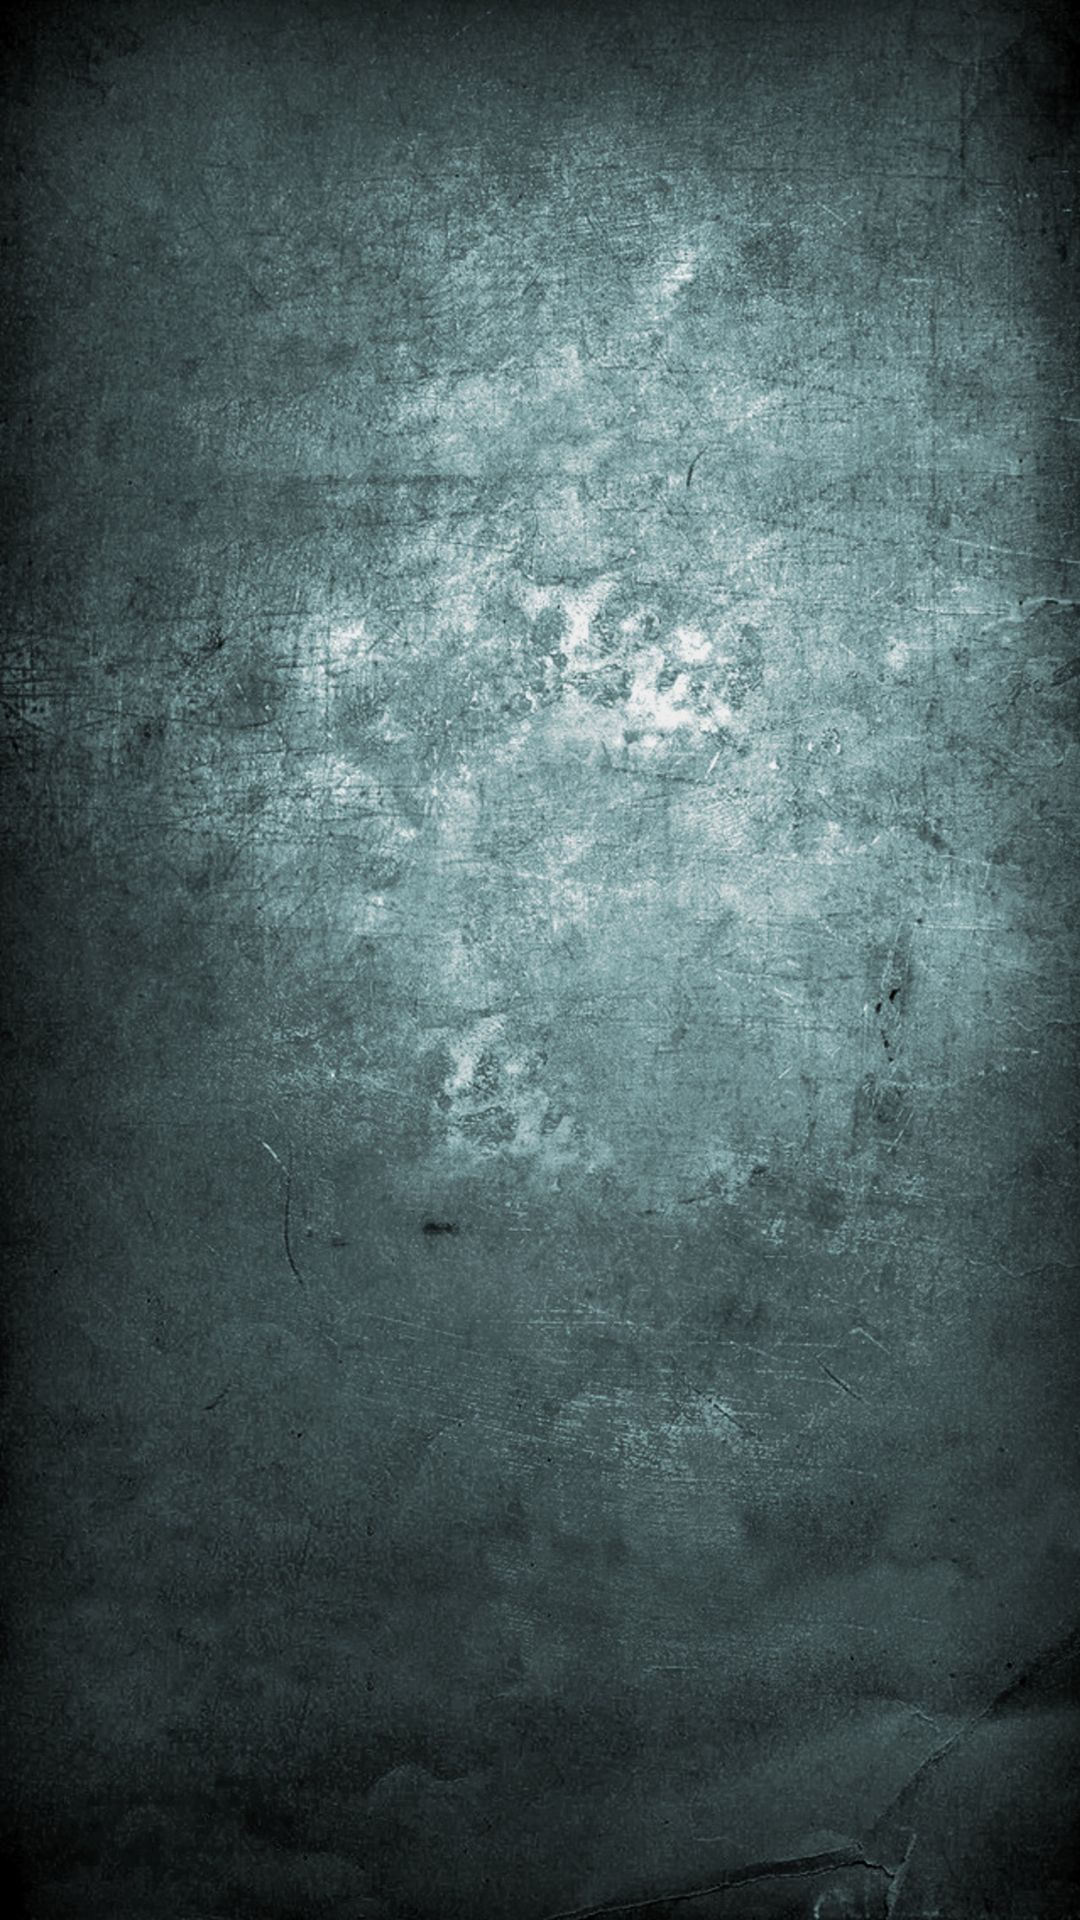 a†'a†'tap and get the free app minimalistic concrete wall grey grunge texture unicolor a· iphone 6 wallpaperwallpapers androidphone